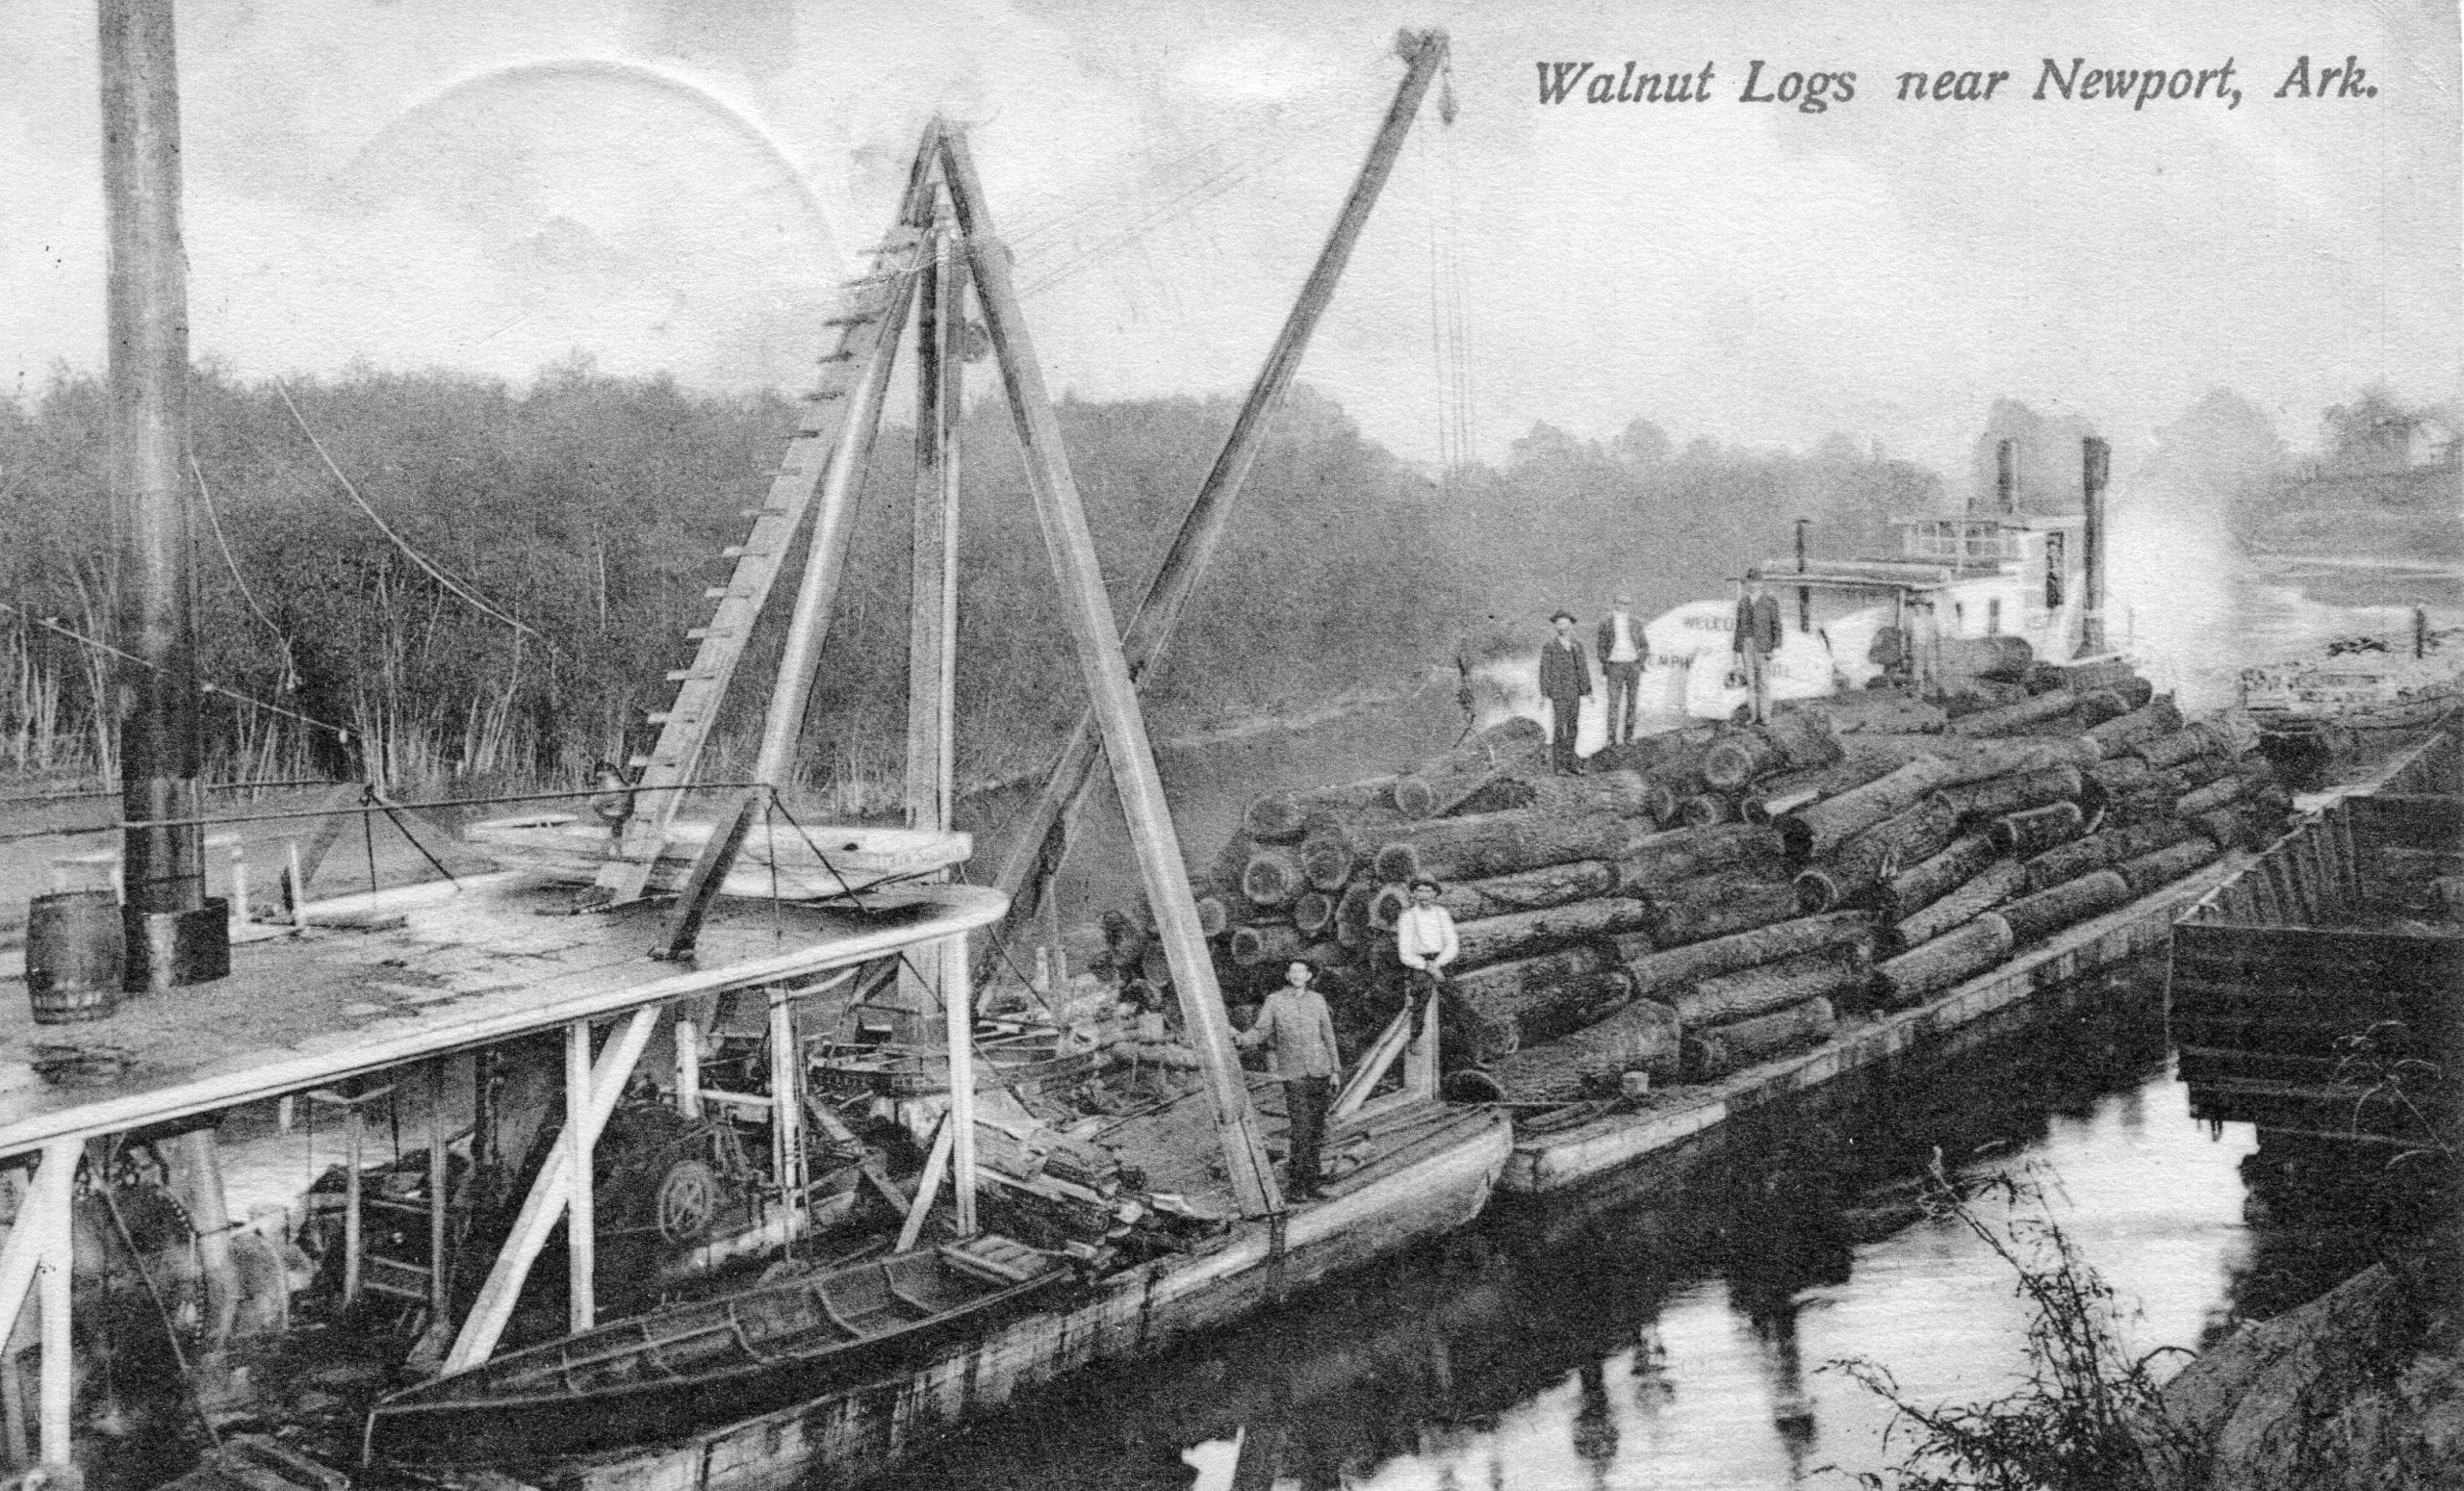 1880's – Walnut Logs on Barge